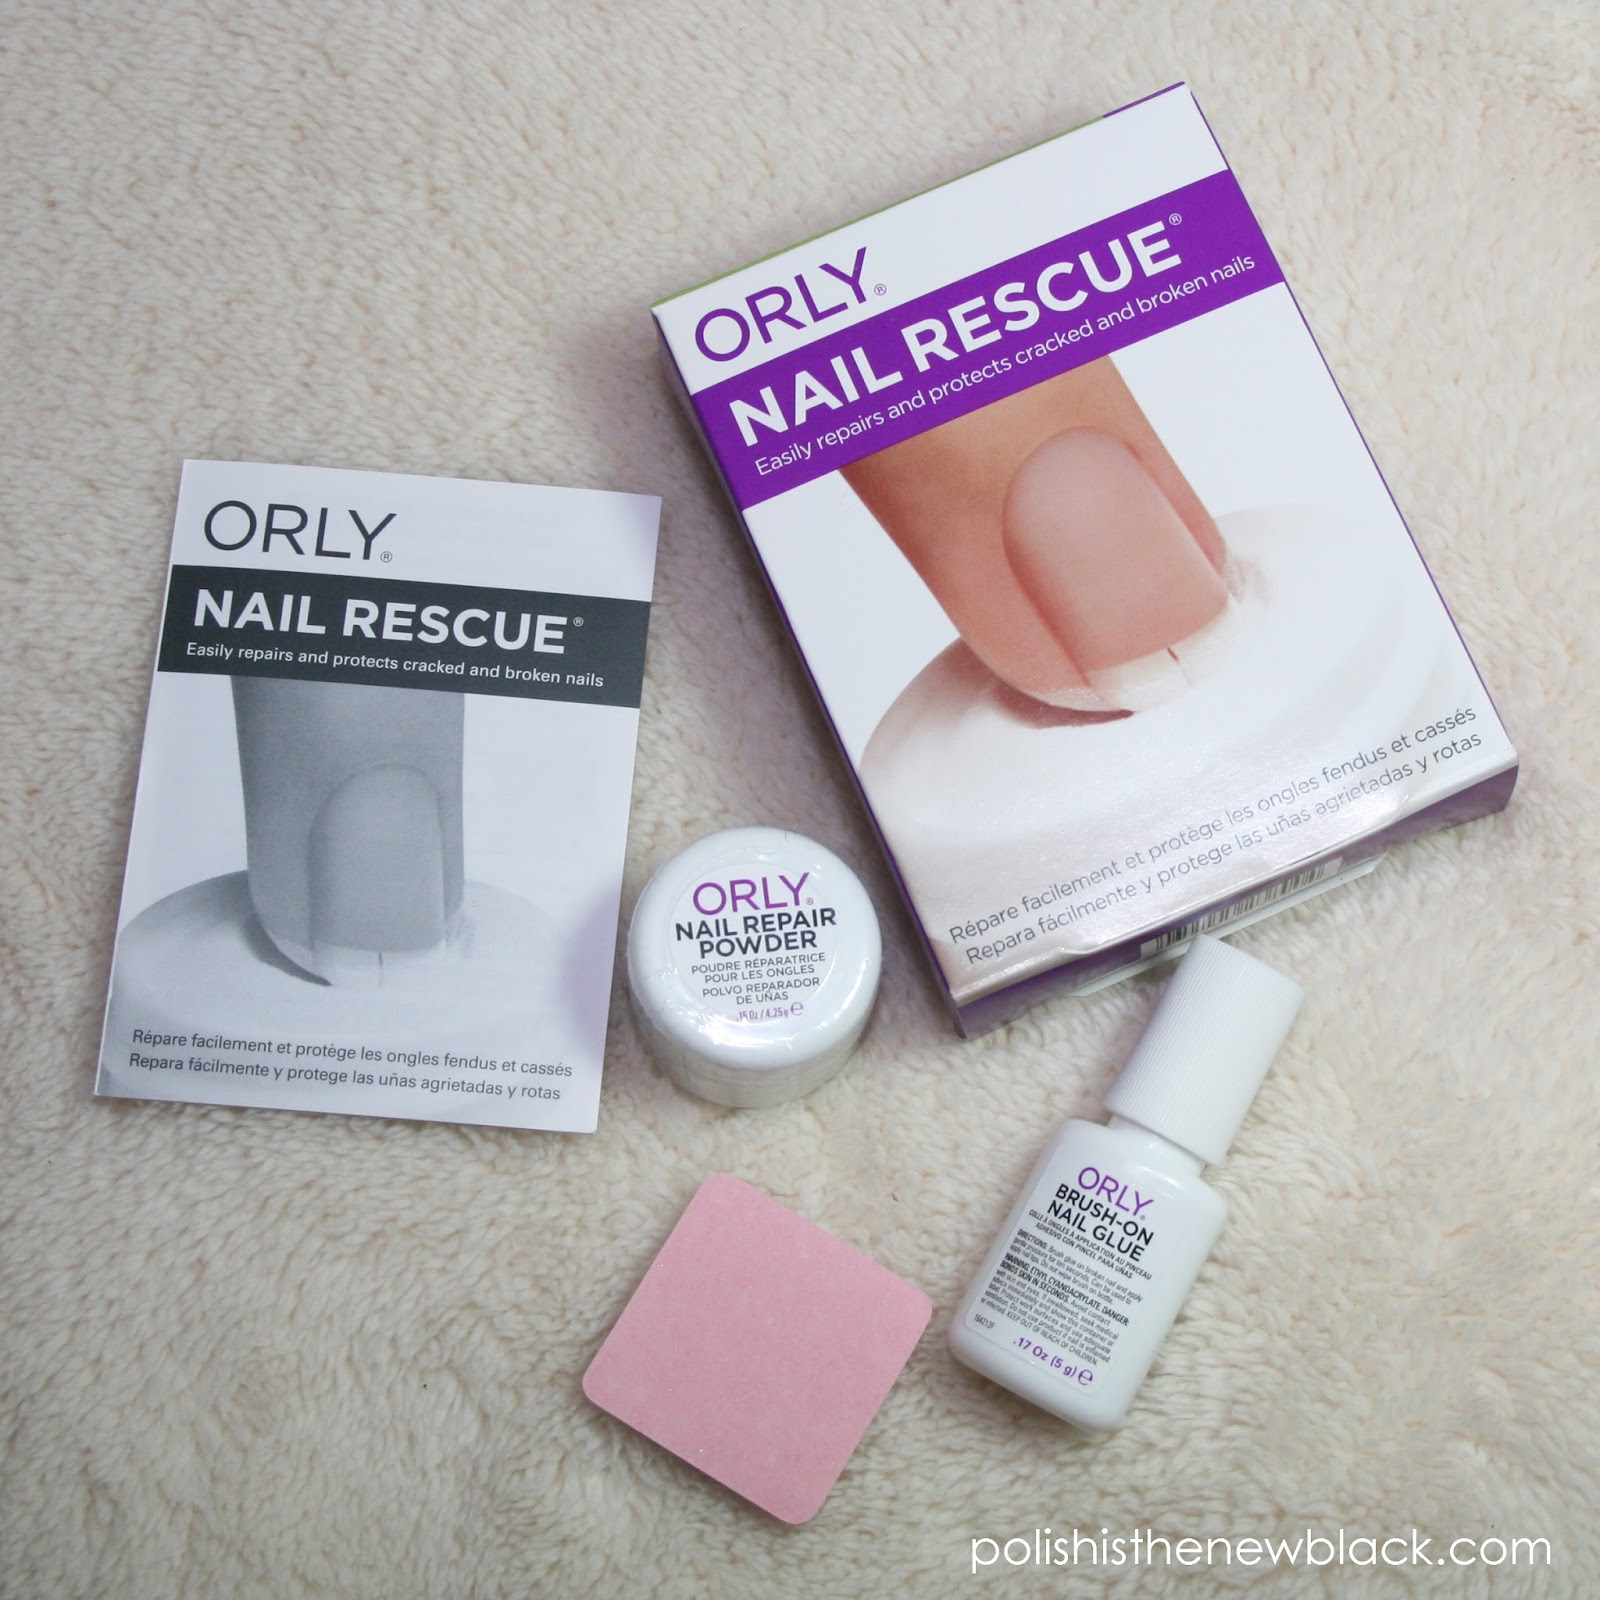 UPDATE: My experience with Orly Nail Rescue / Polish Is The New Black